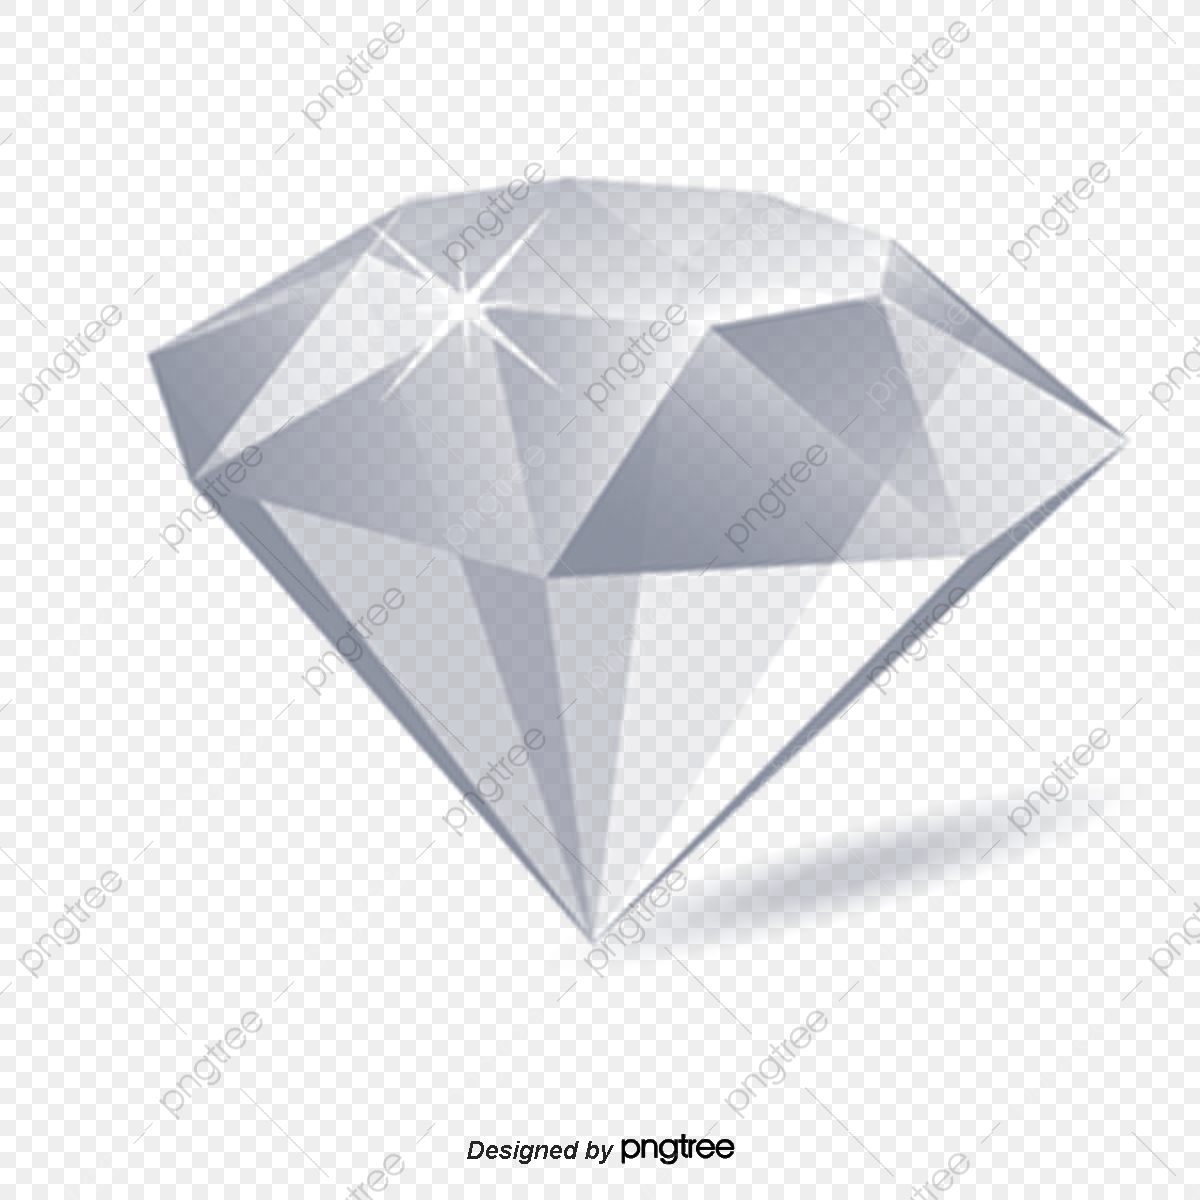 hight resolution of commercial use resource upgrade to premium plan and get license authorization upgradenow vector diamonds vector diagram